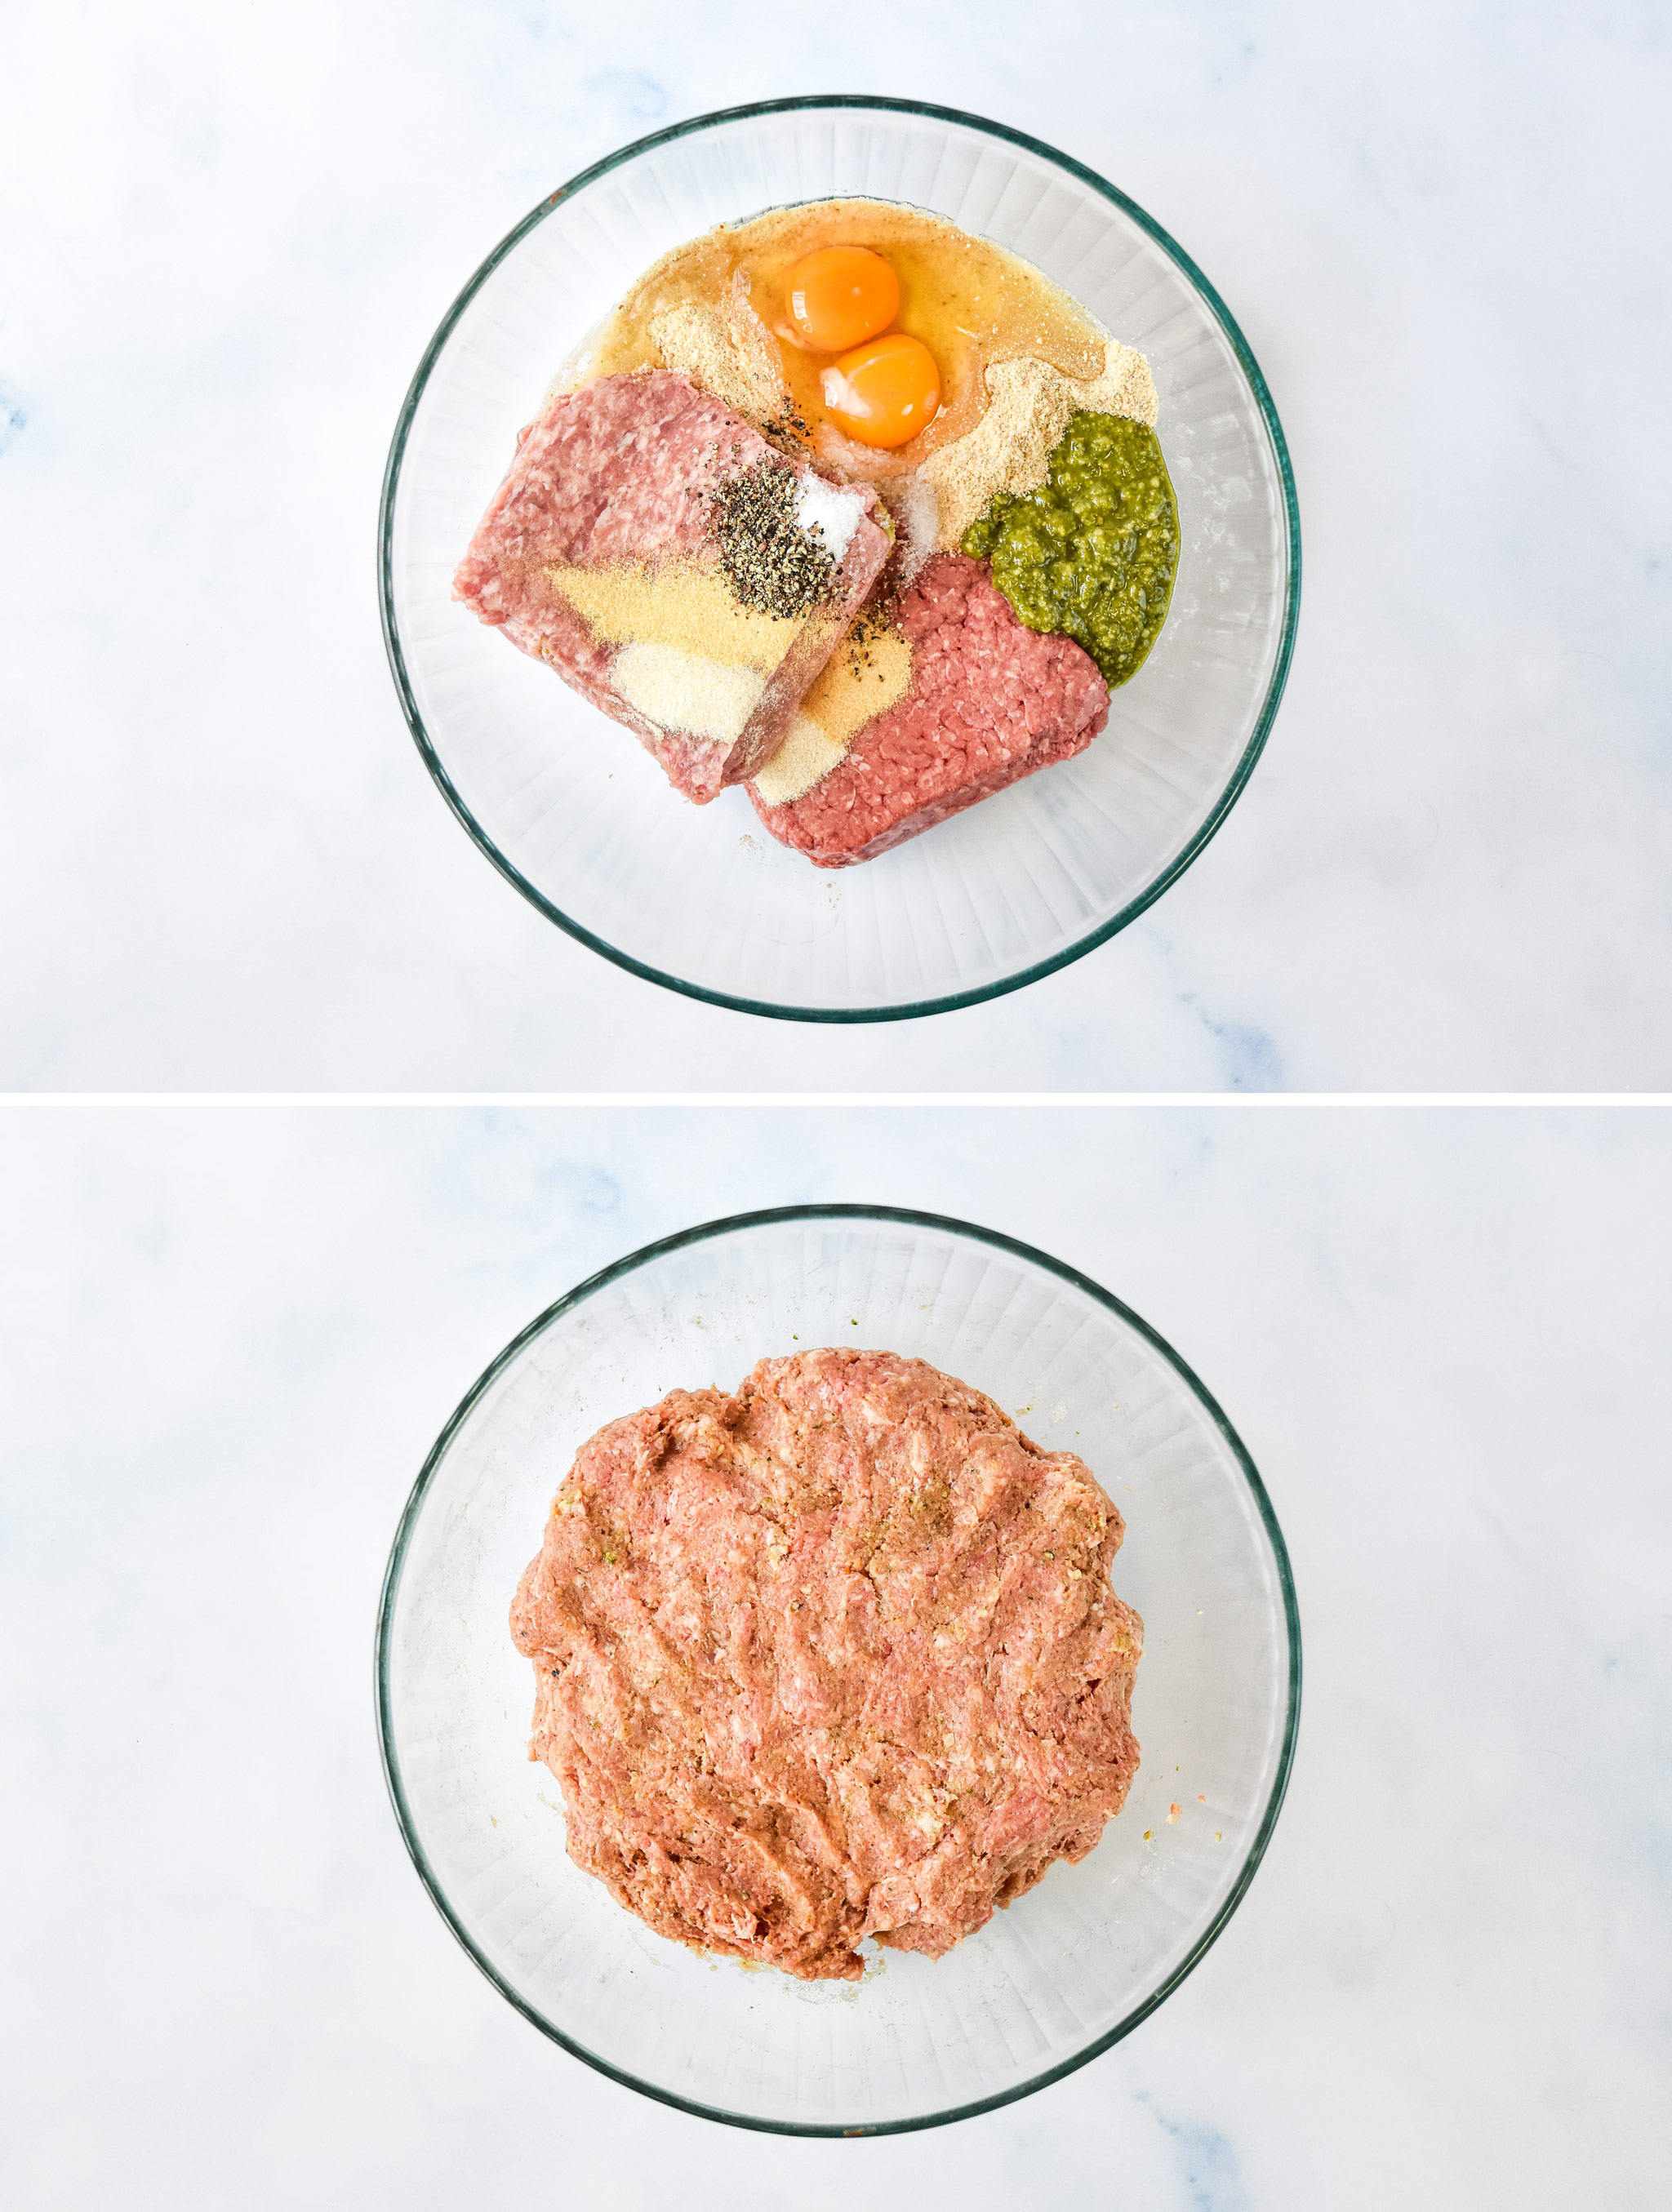 before and after mixing all the meatball ingredients together in a glass bowl.